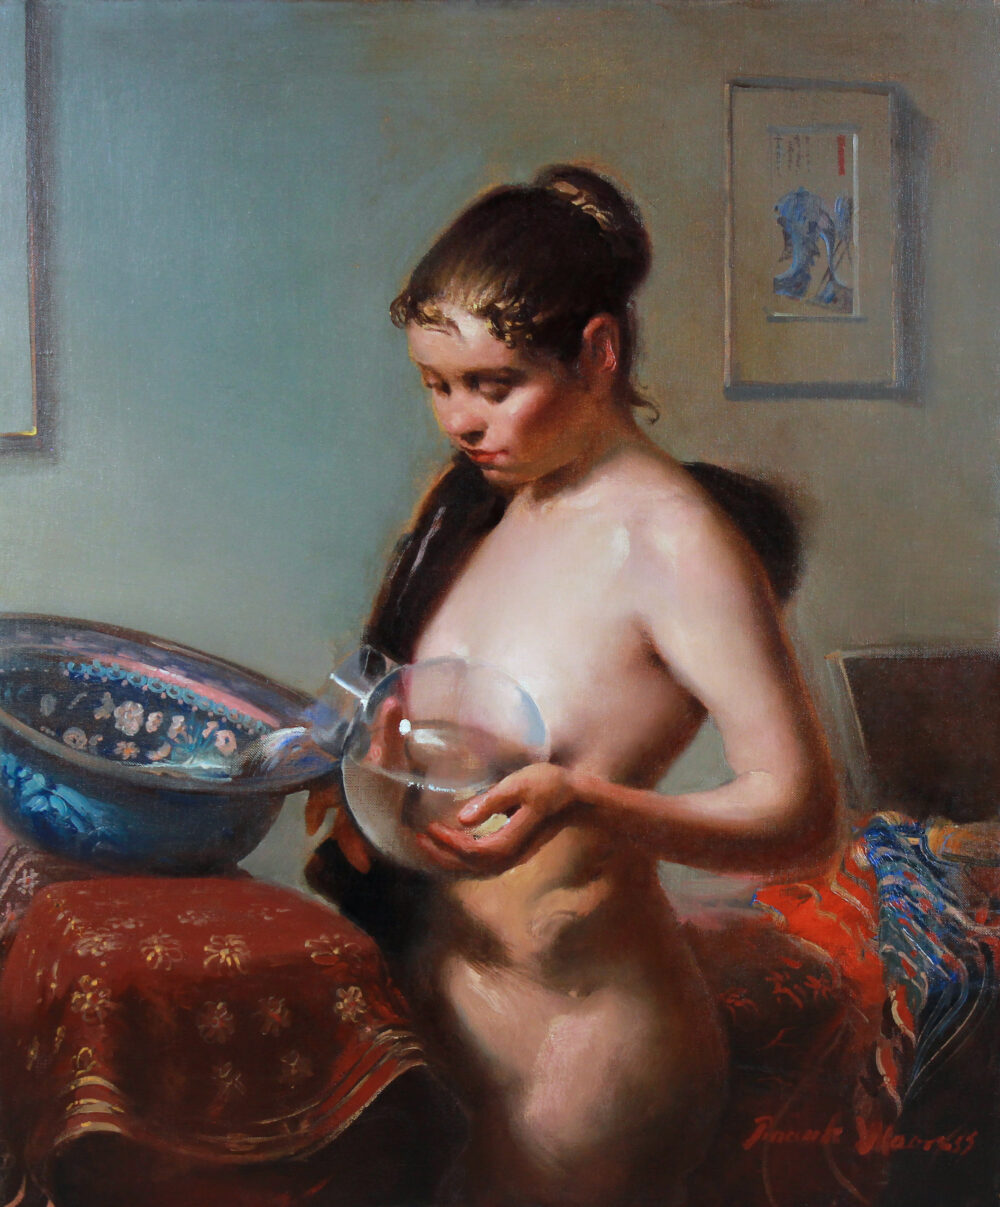 Young standing nude at the washbasin